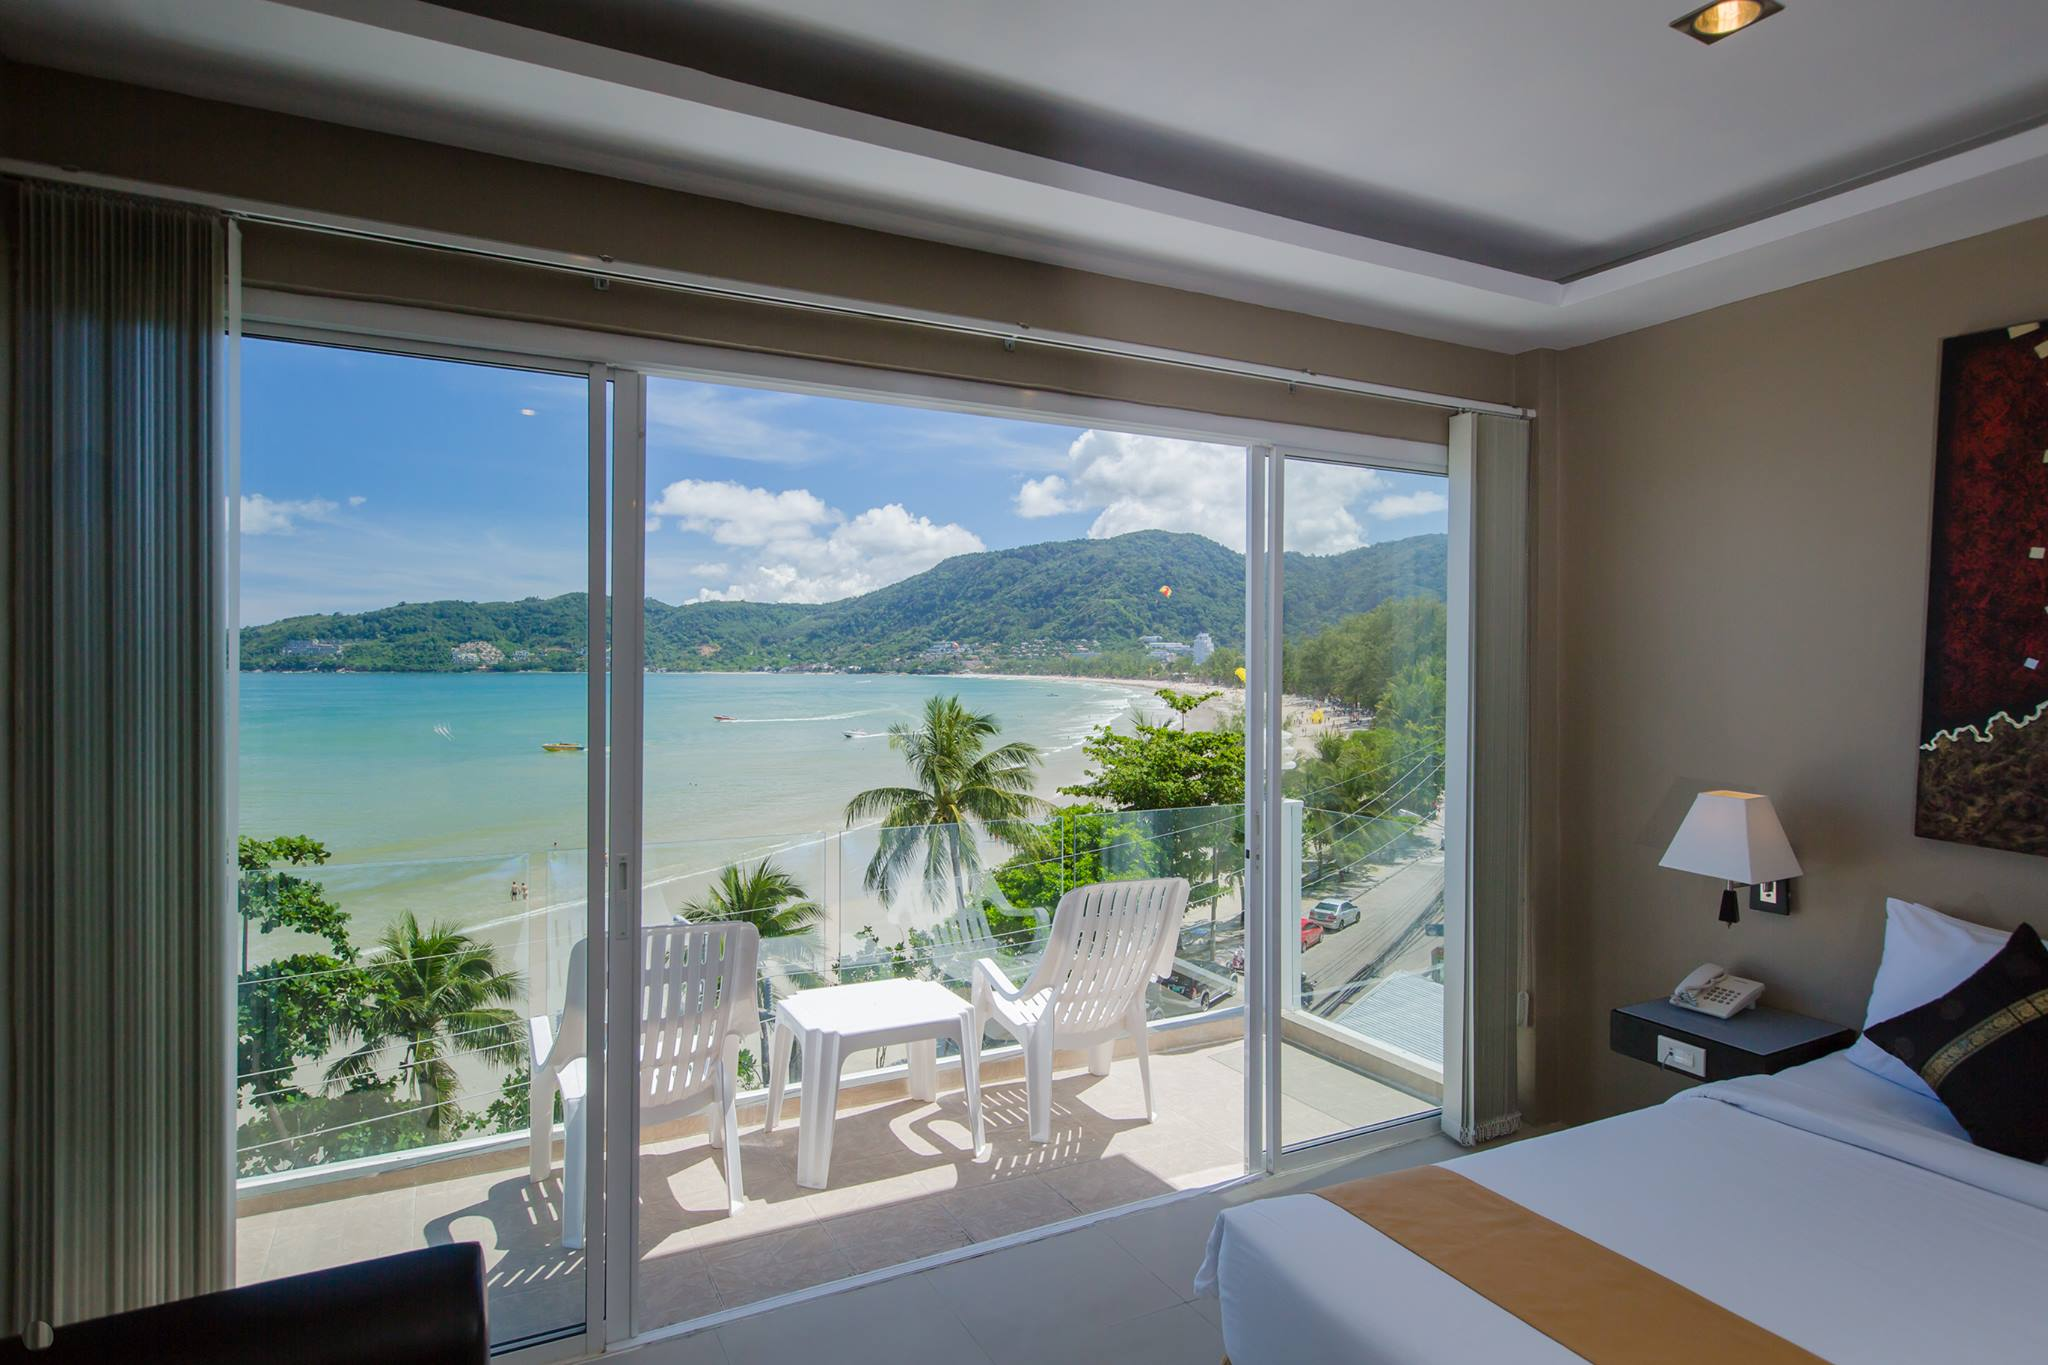 The Front Hotel Patong Beach Phuket